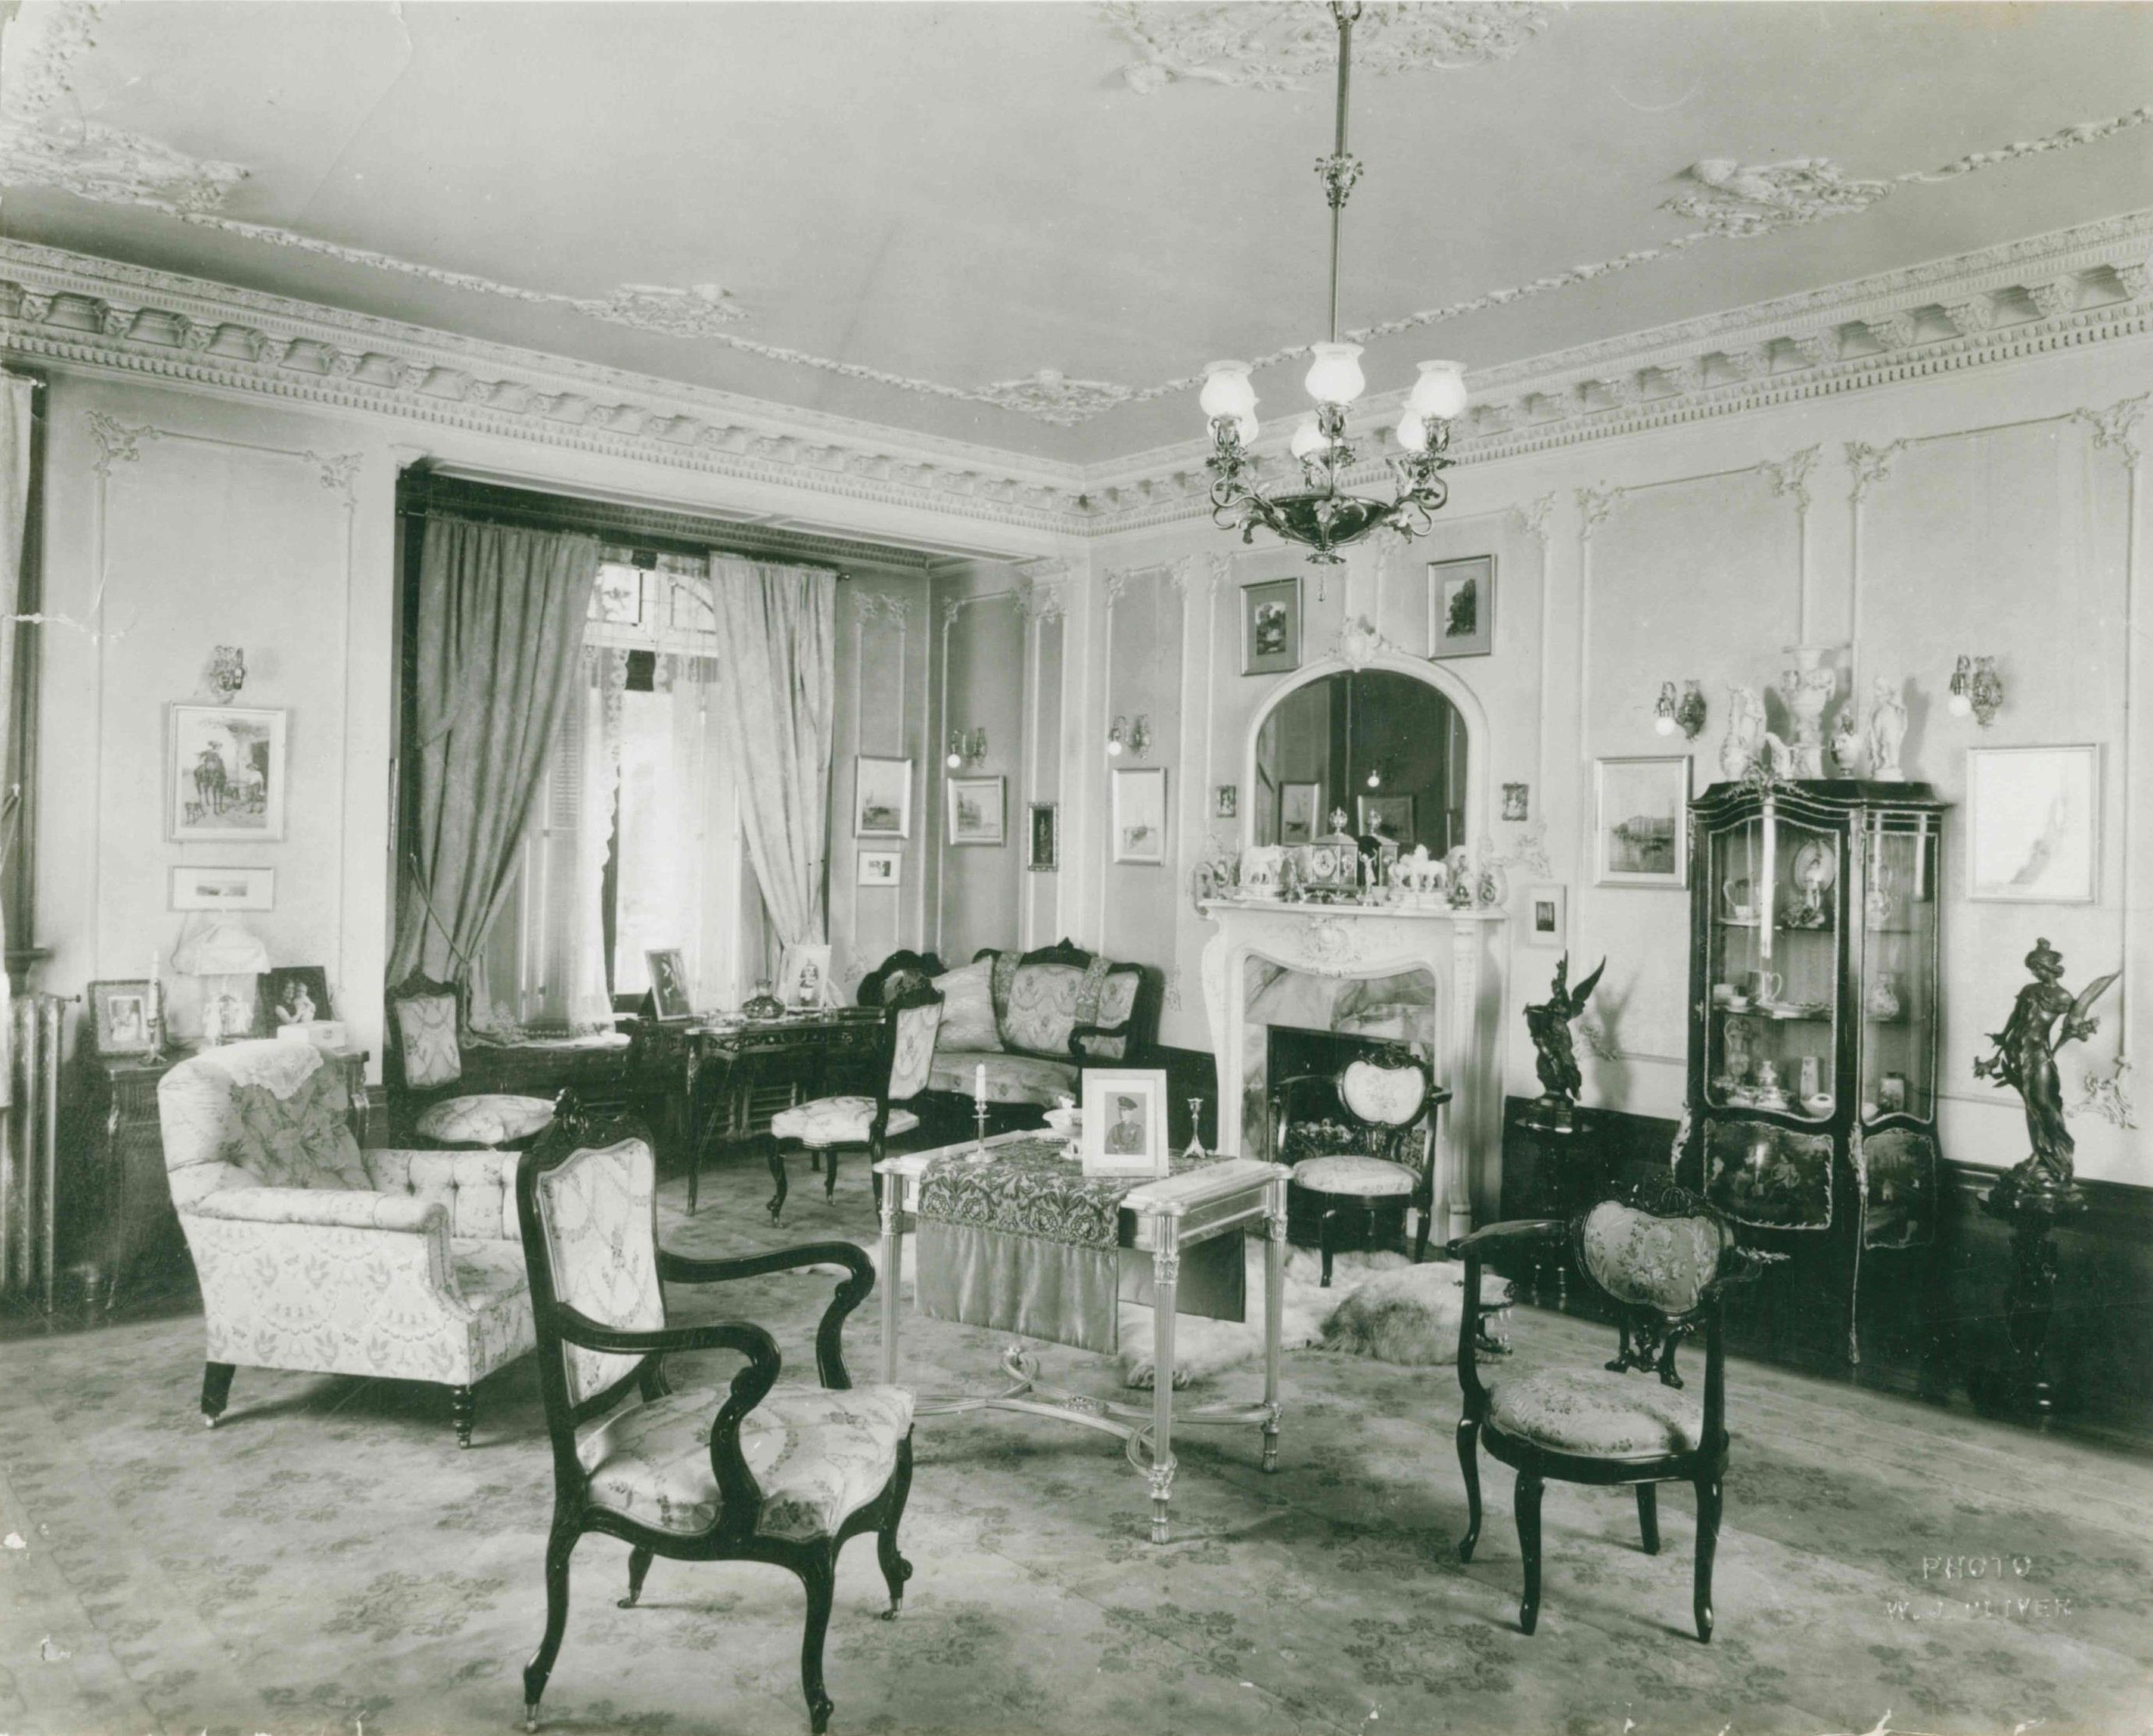 Image 3, Front Sitting Room Lougheed House Calgary, AB, c. 1920